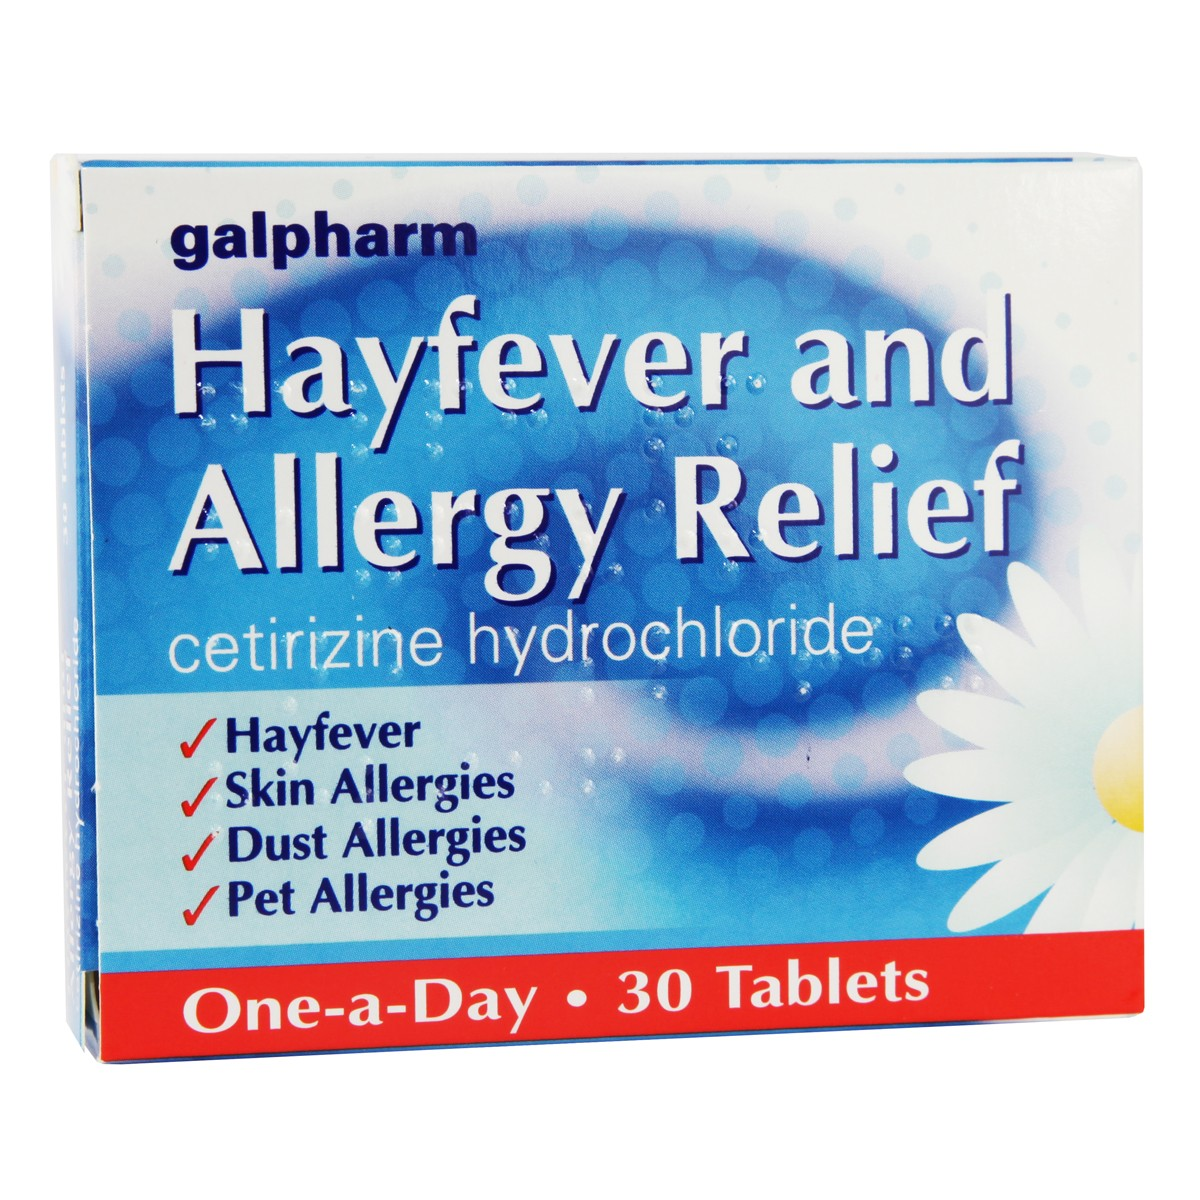 Galpharm Cetirizine 10mg Allergy Relief Tablets